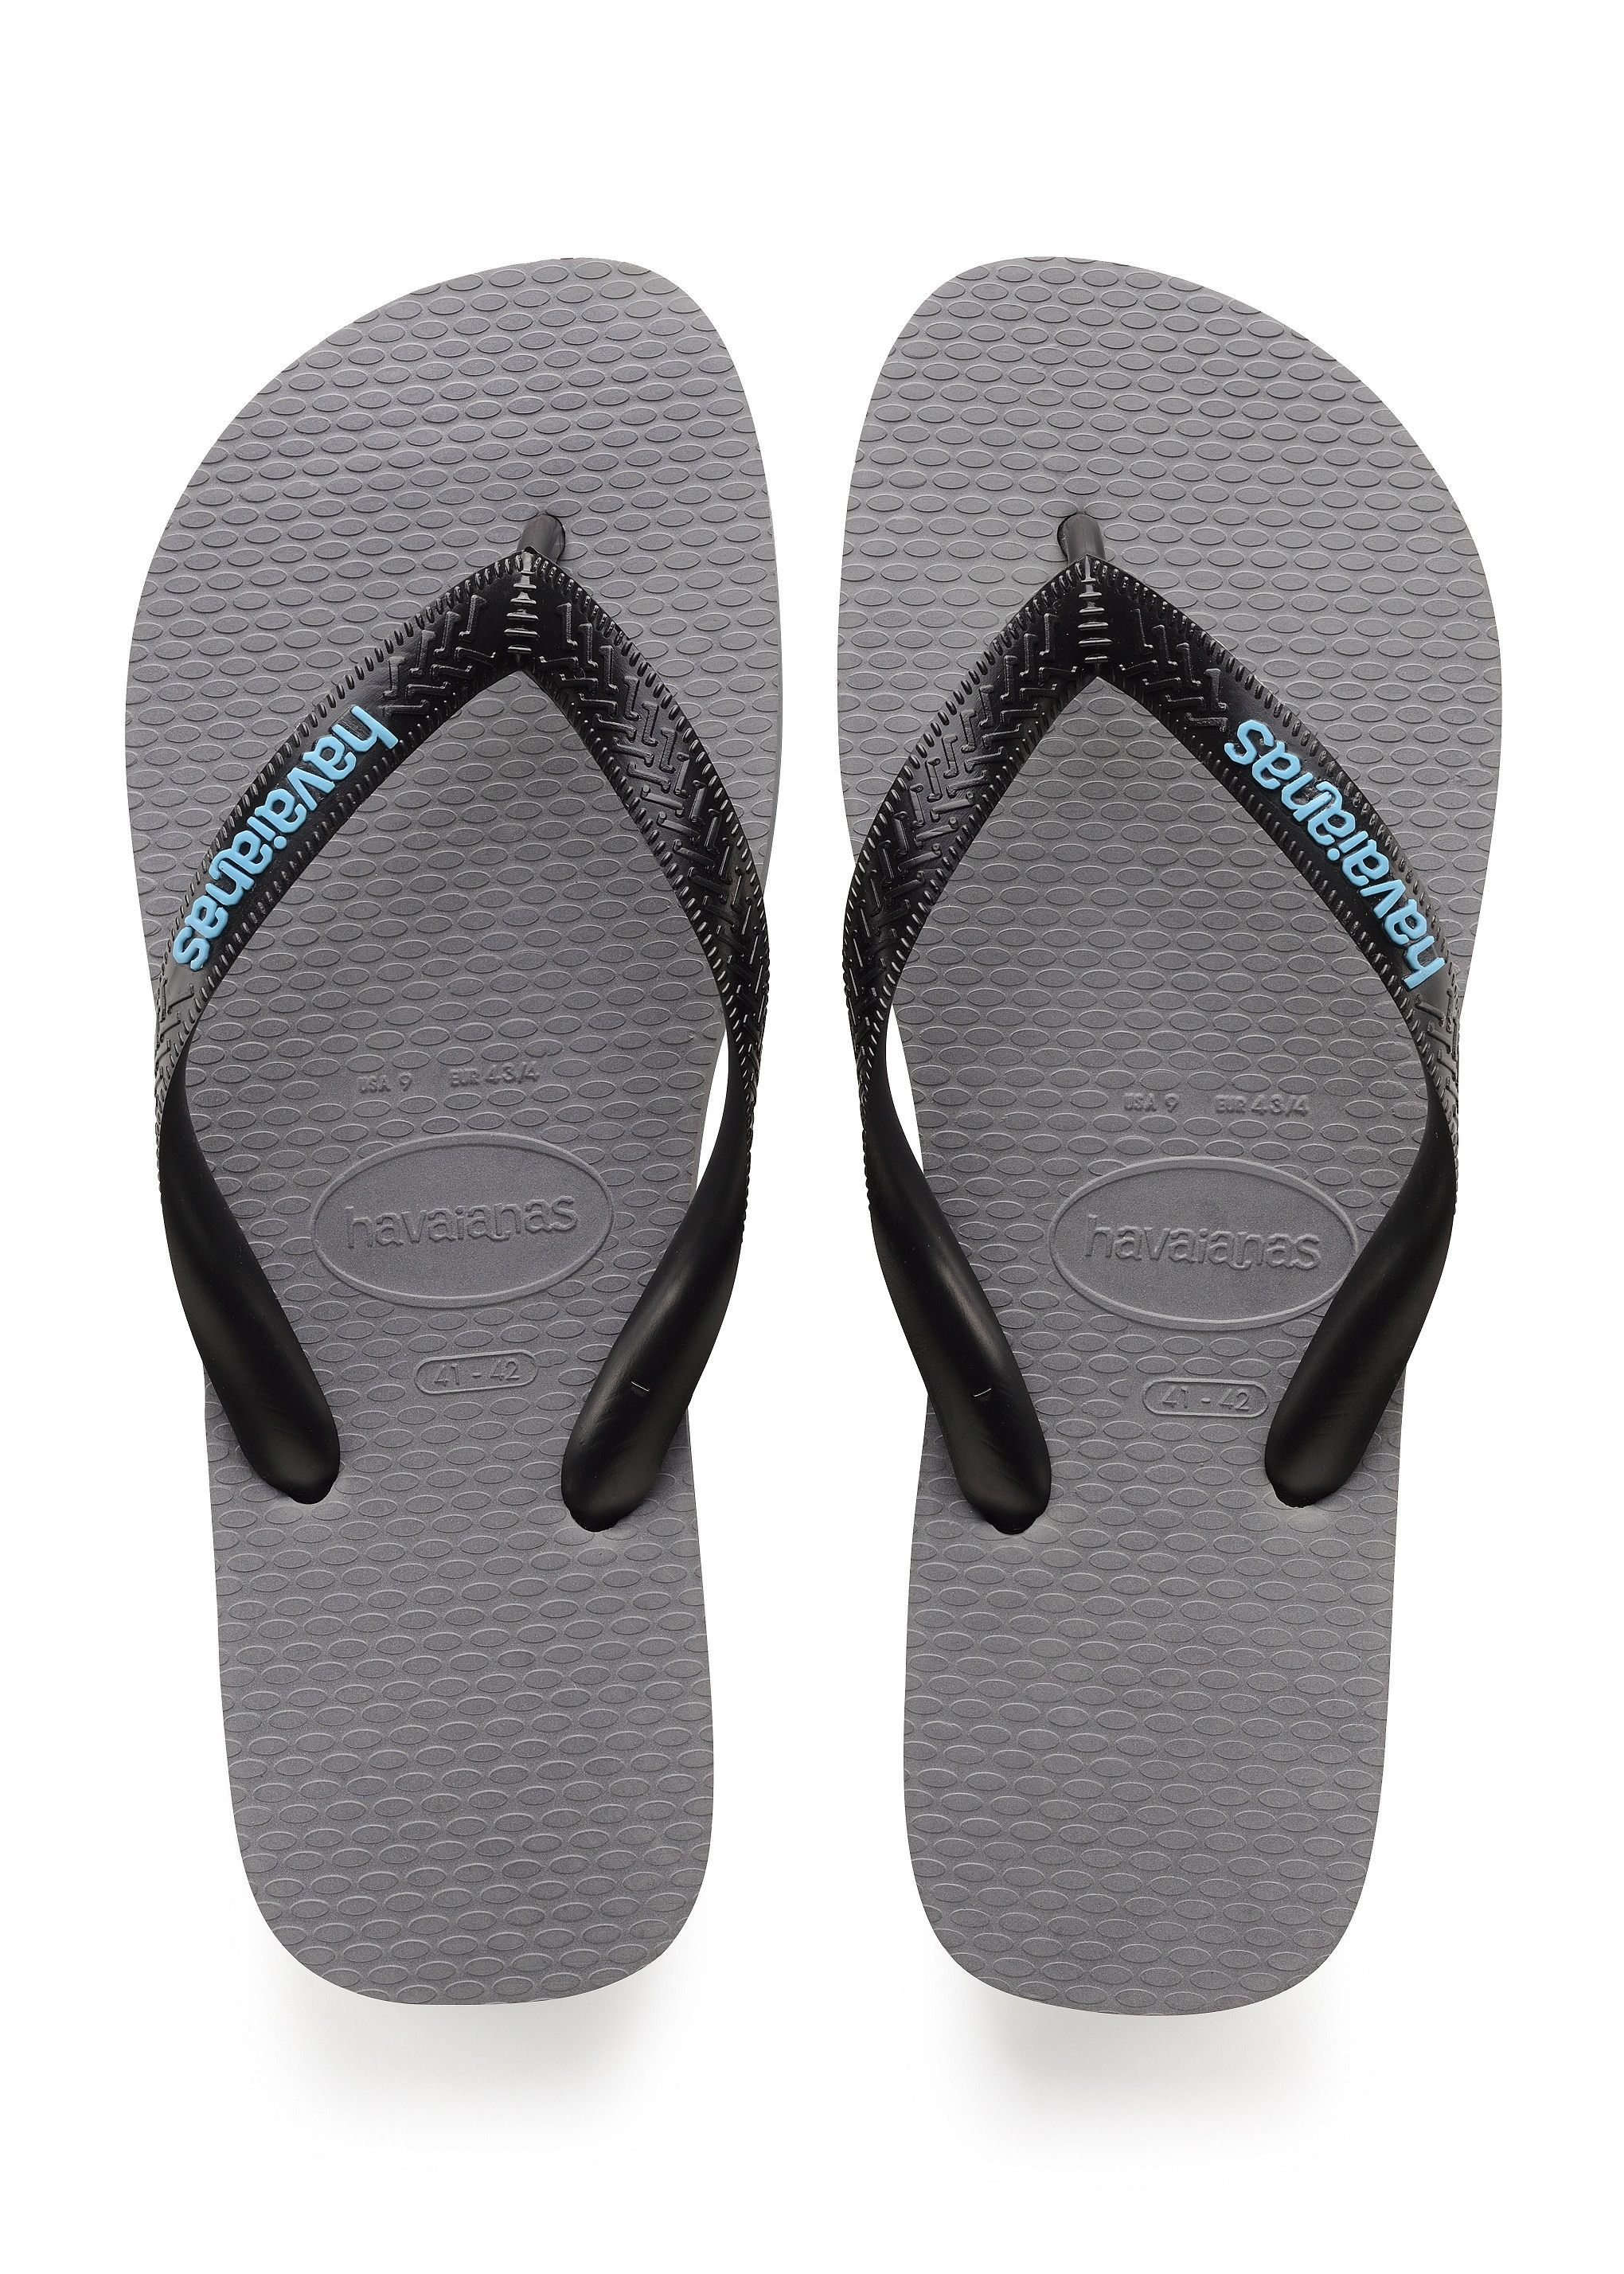 ed2f535680a Havaianas Top Logo Filete Sandal Steel Grey Price From  £19.36